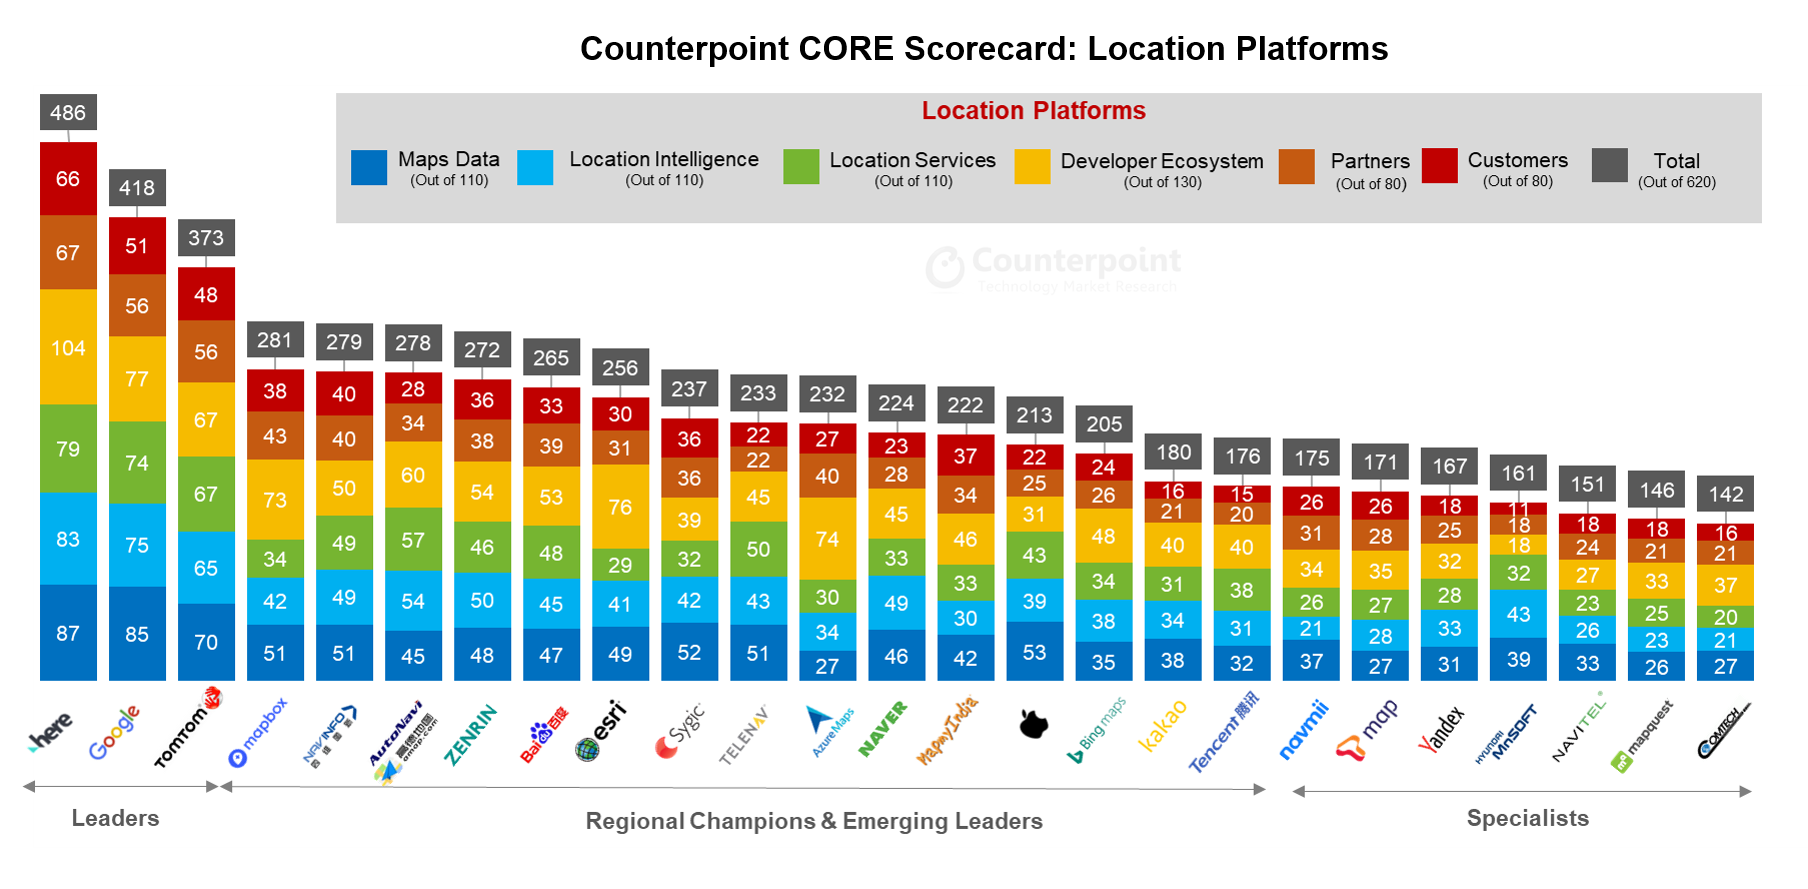 Counterpoint Research CORE Analysis - Location Platforms Evaluation 2019